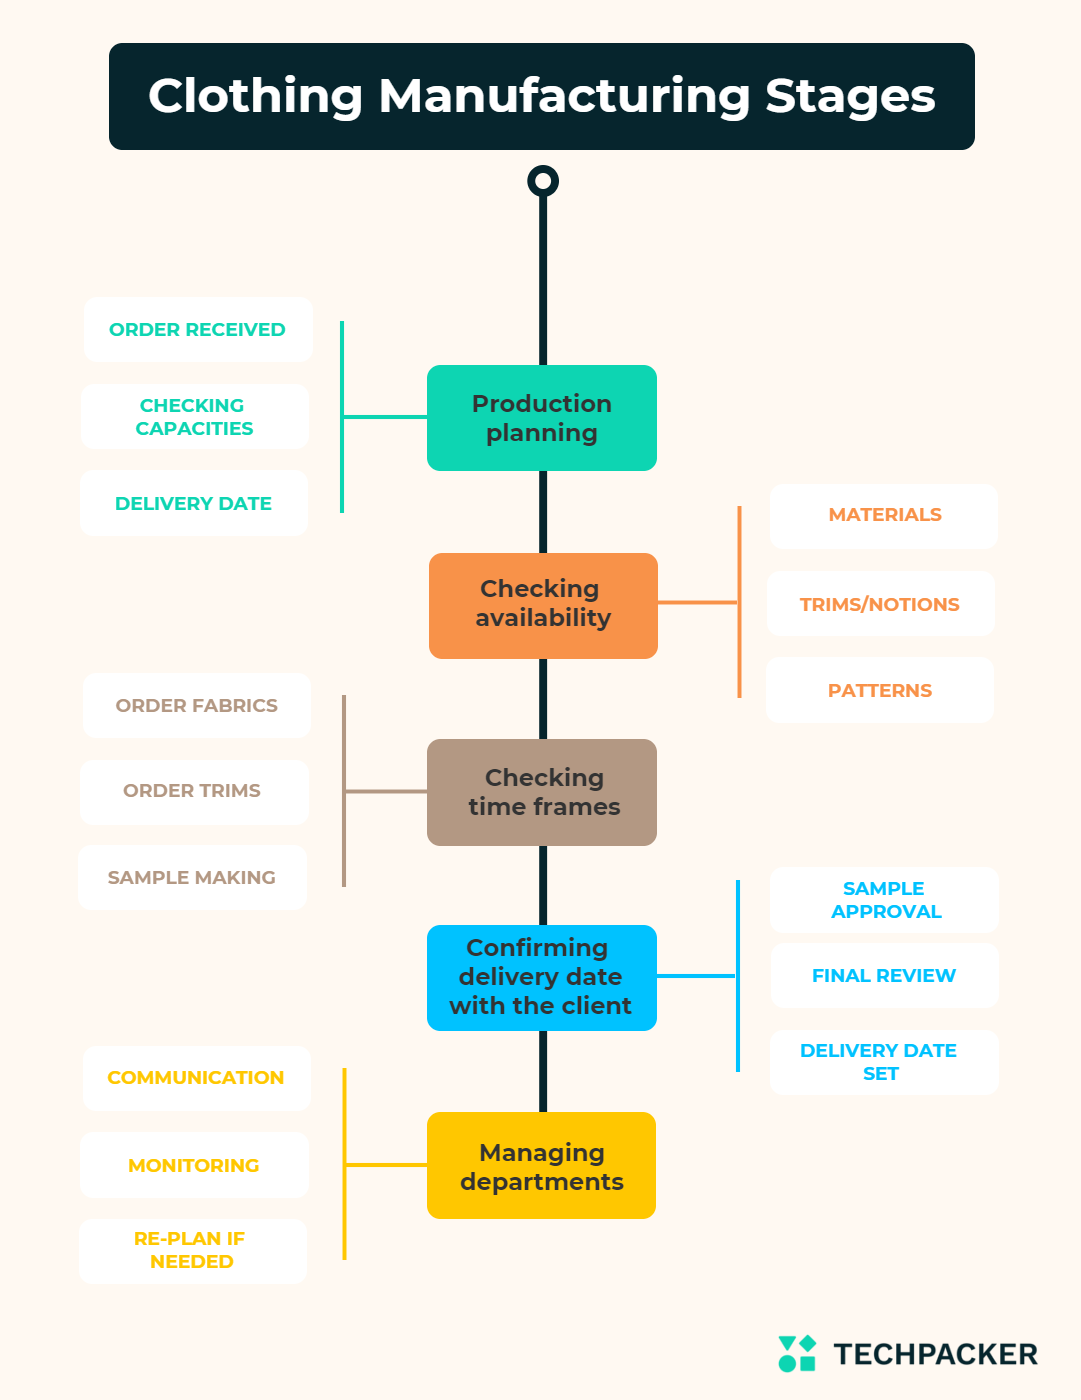 Clothing manufacturing stages